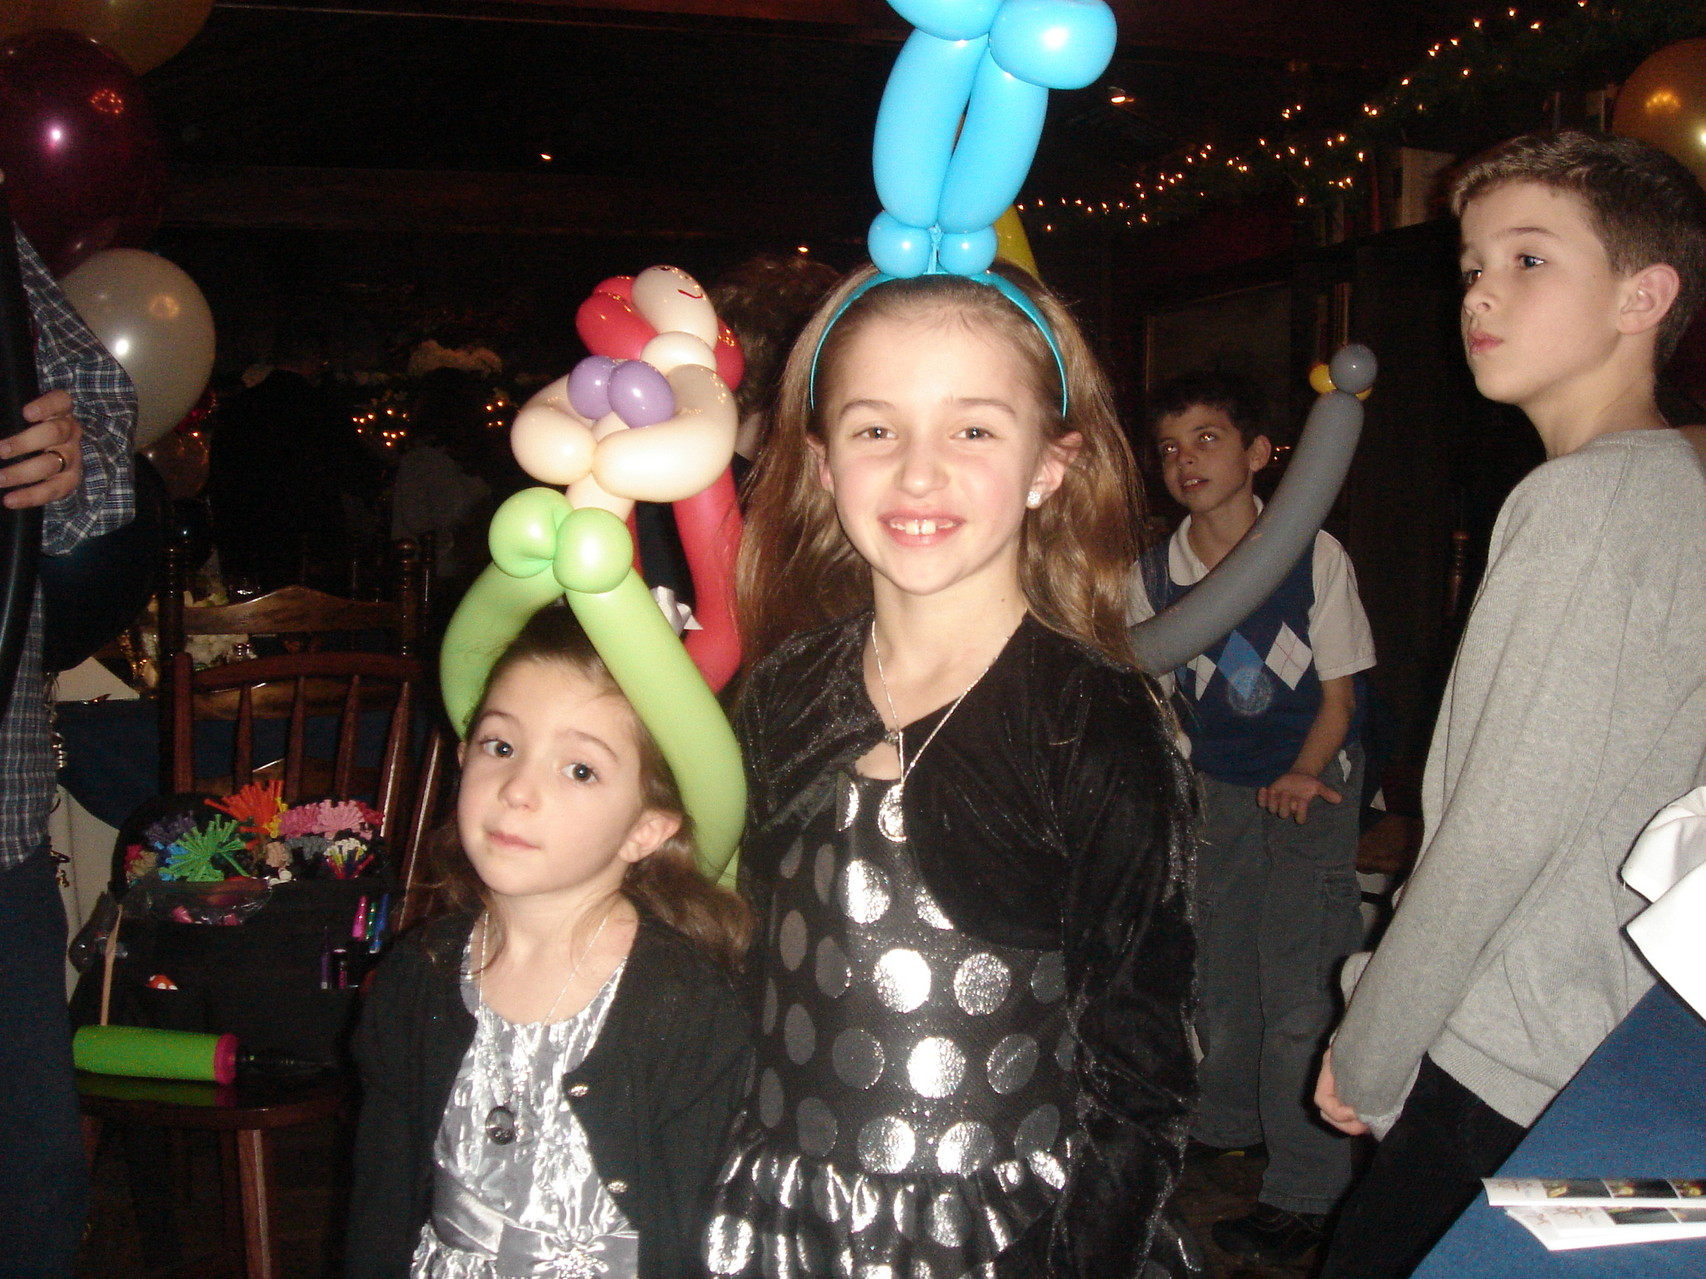 The children enjoyed the balloons! Little Mermaid headdress on left....